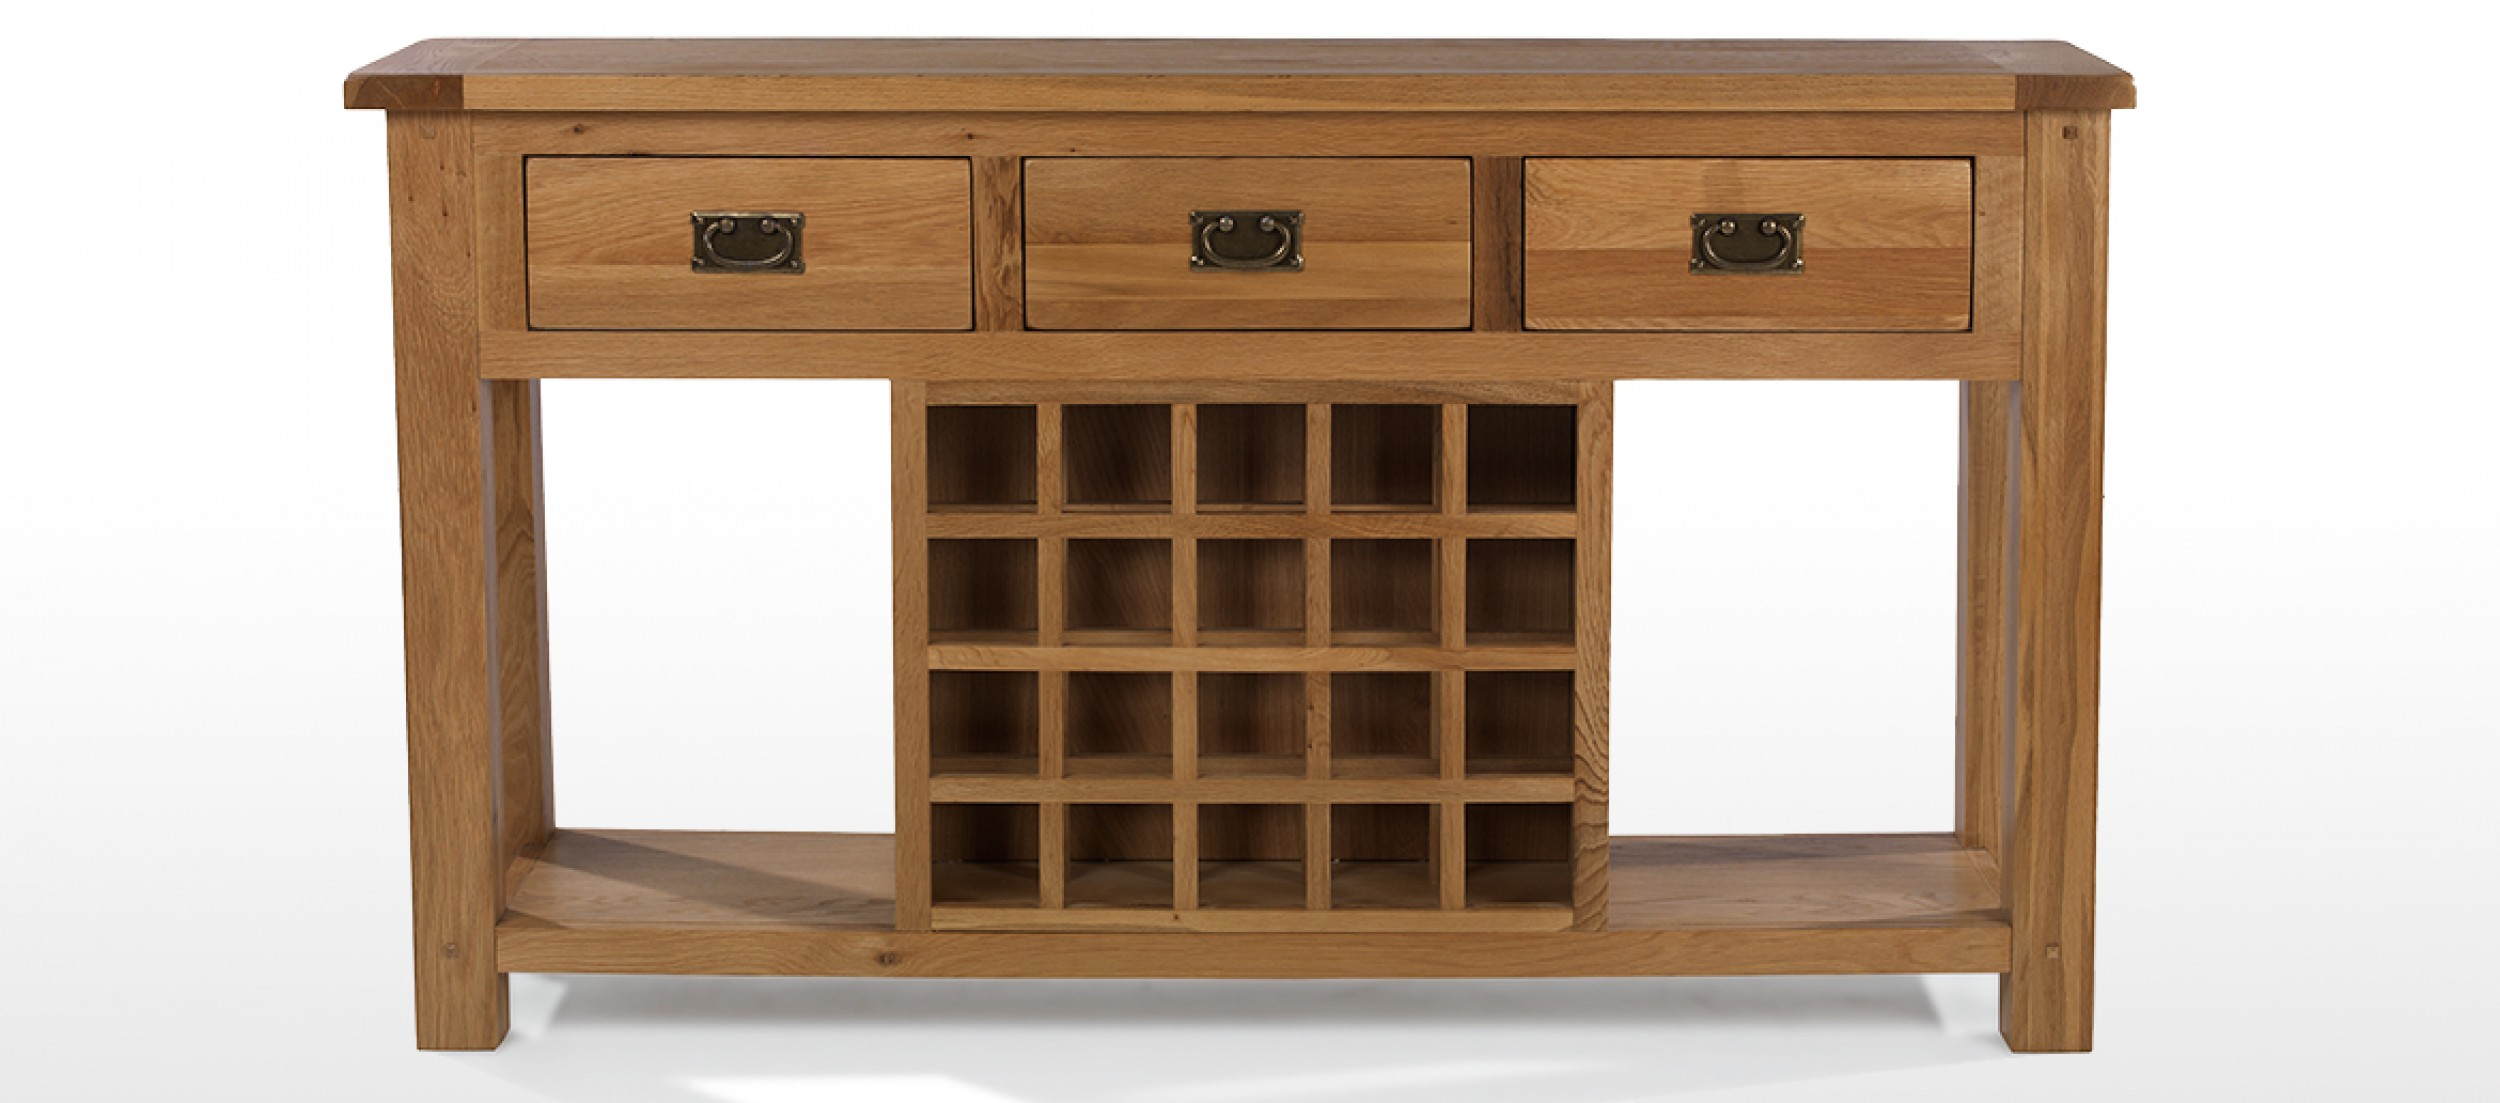 Rustic Oak Wine Rack Console Table : Quercus Living